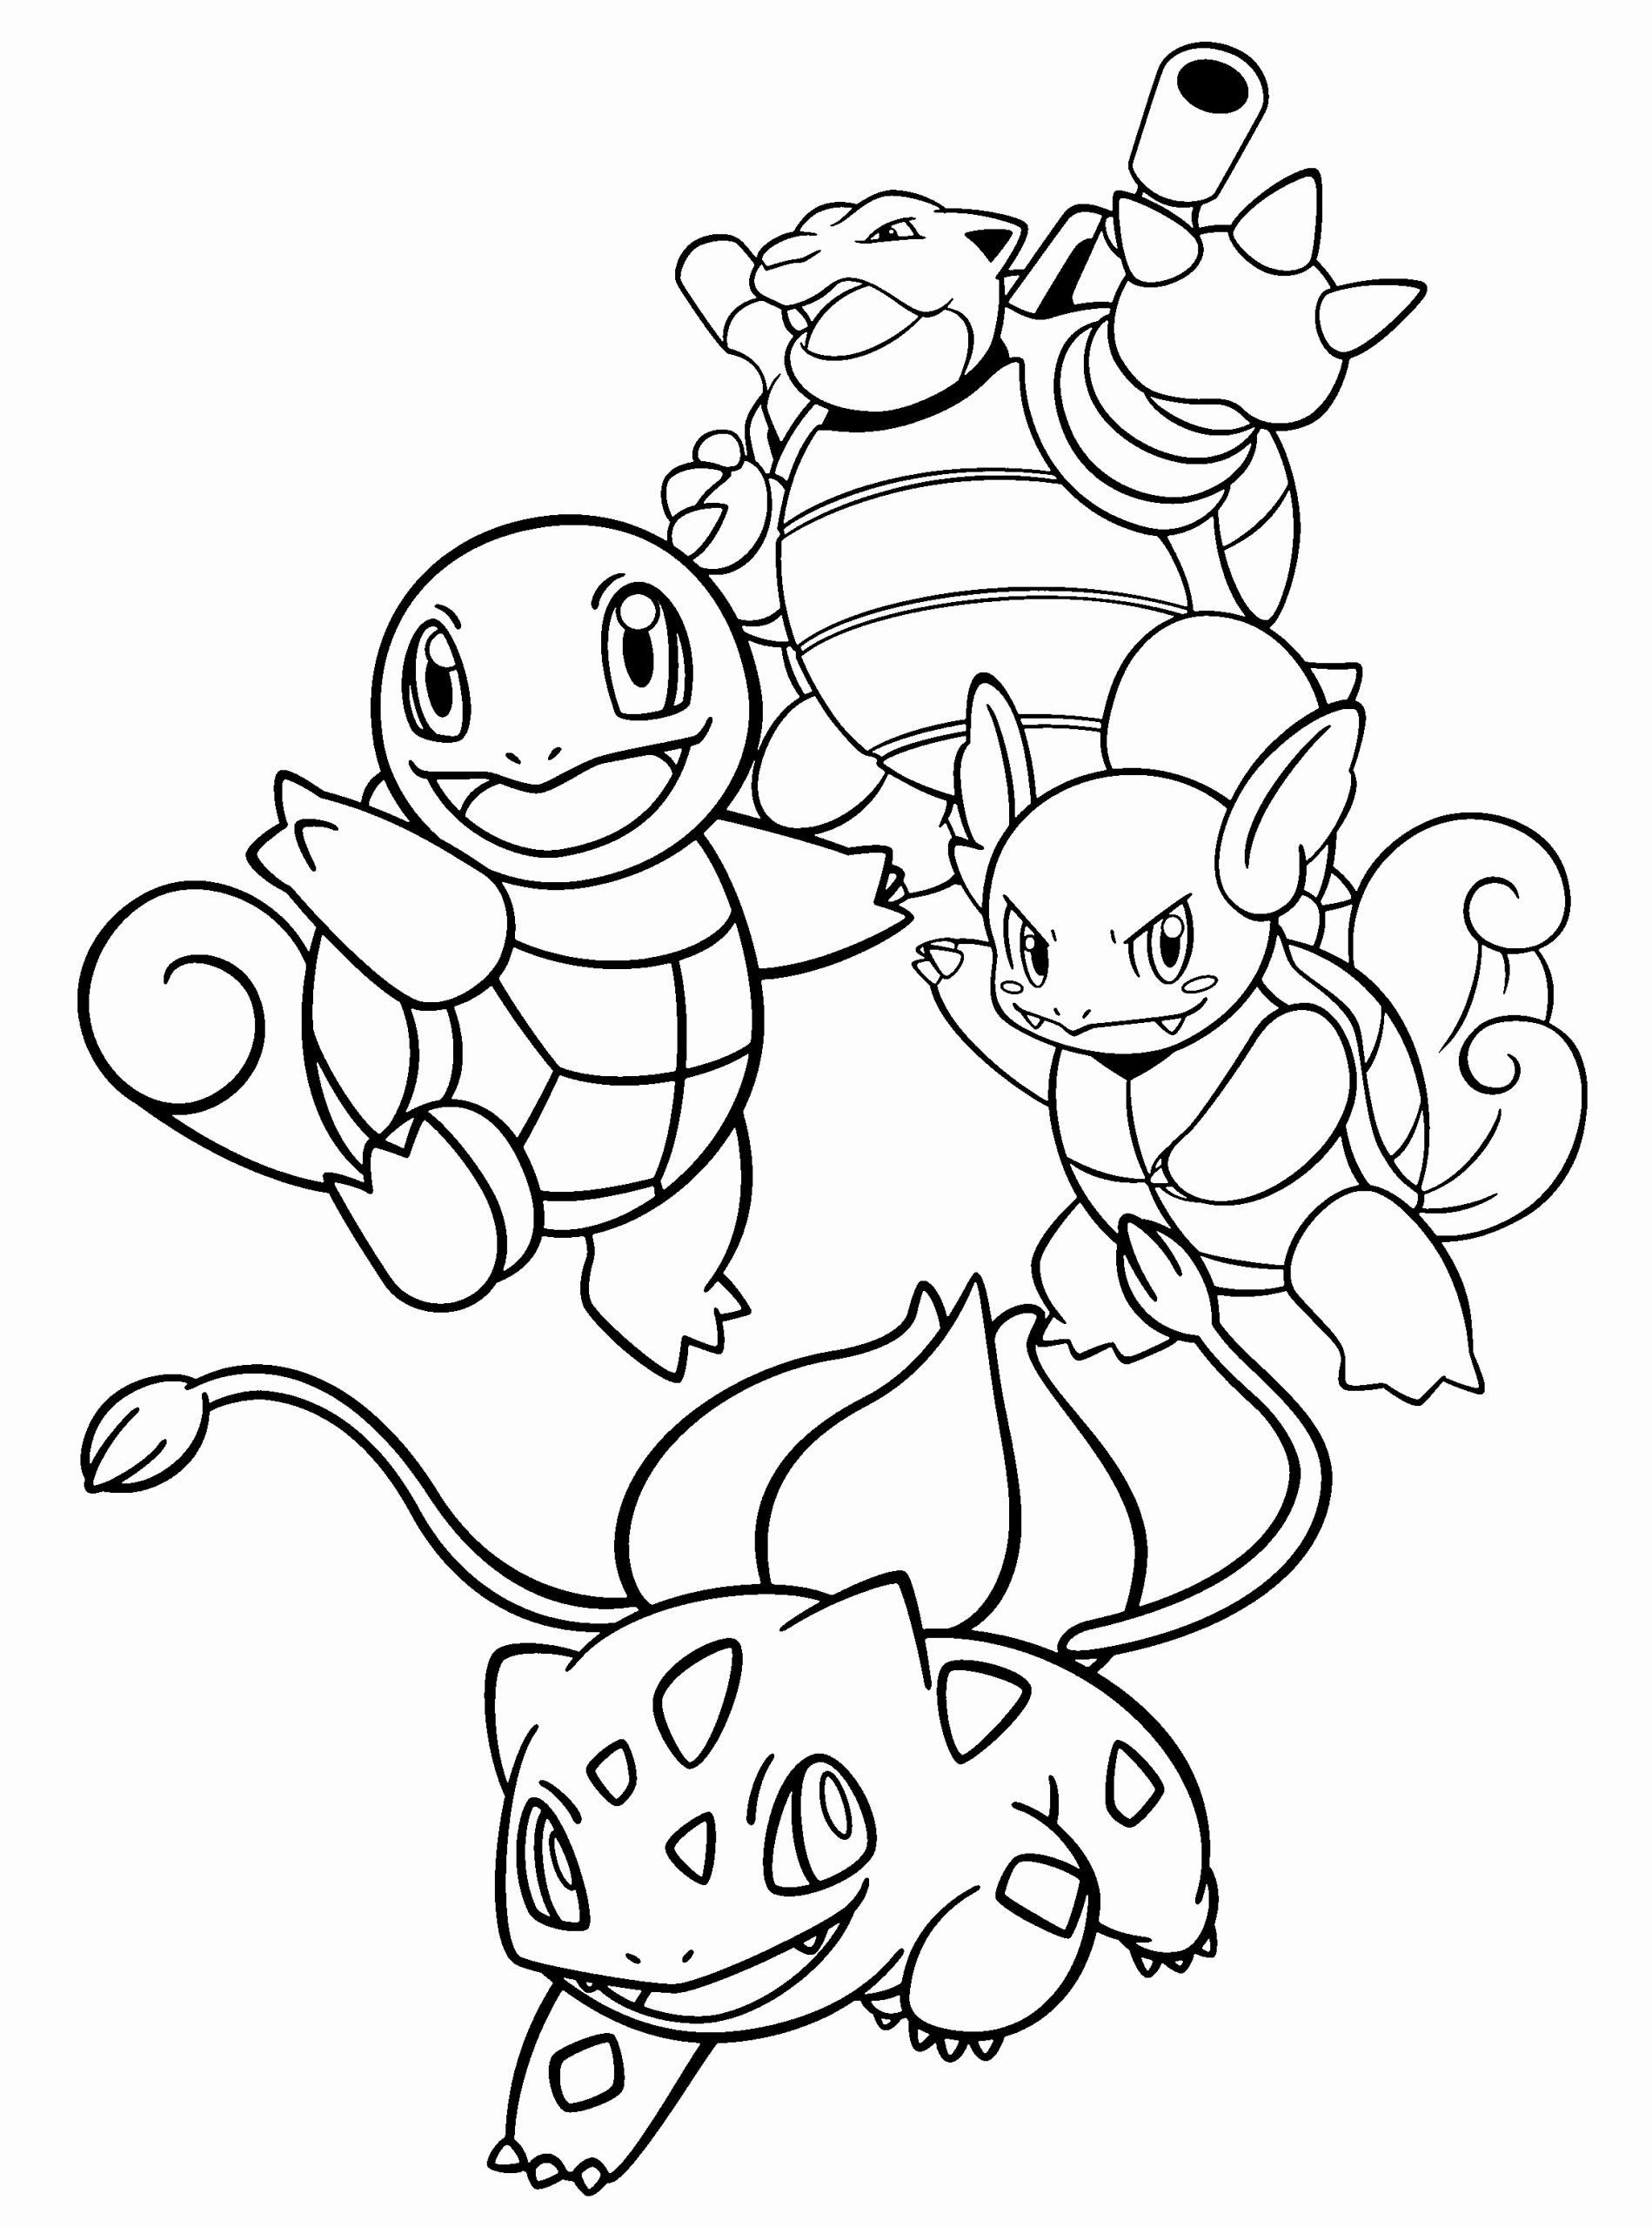 32le Pokemon Coloring Page In